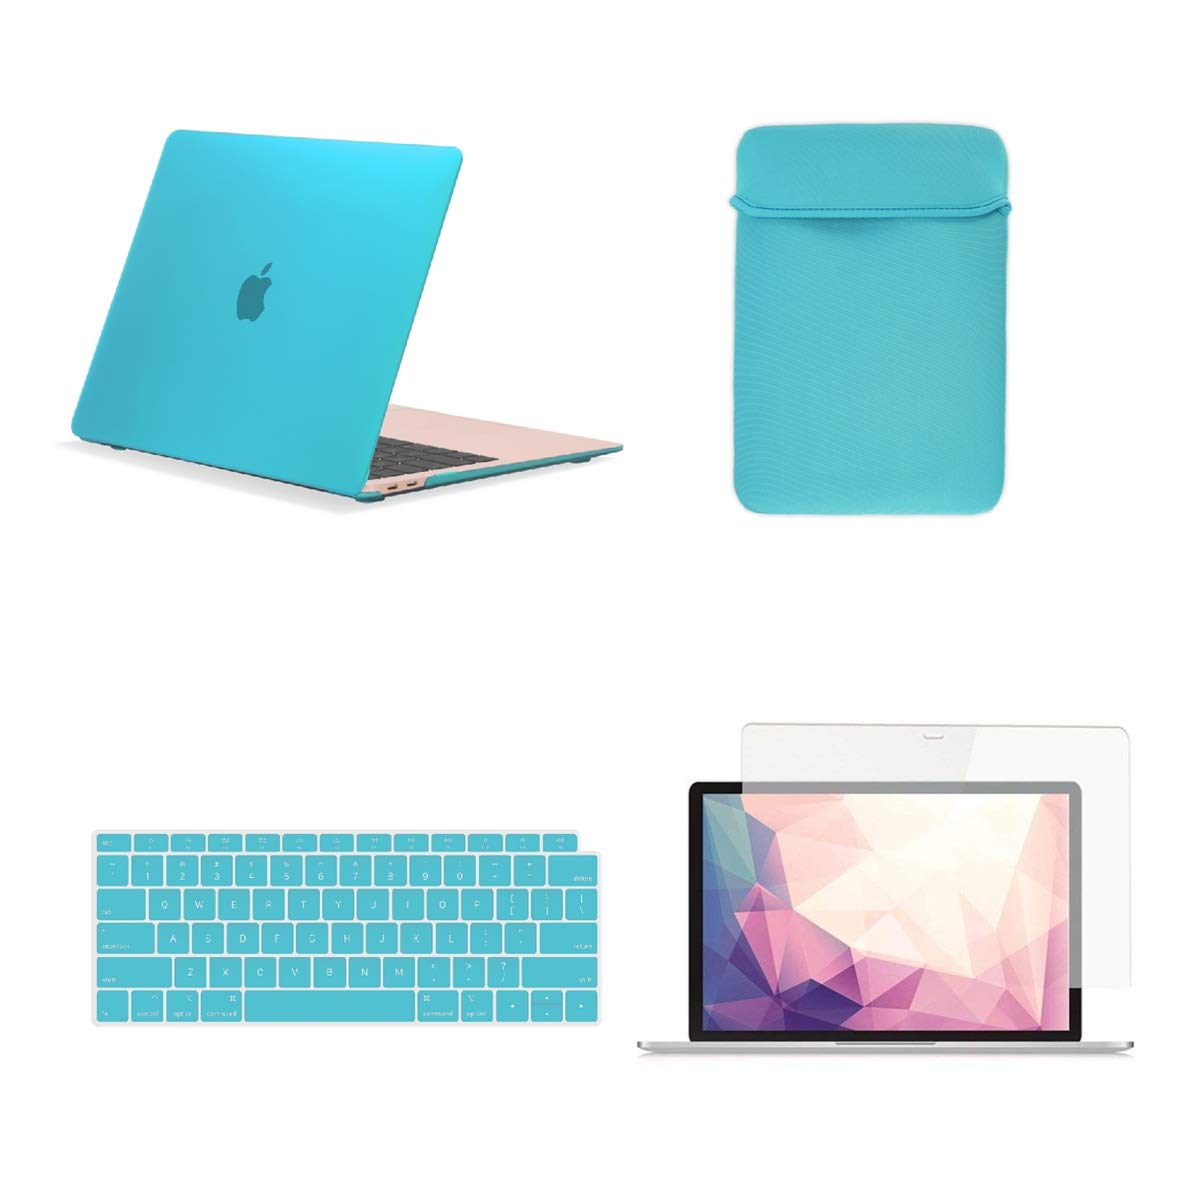 TOP CASE MacBook Air 13 Inch Case A1932 with Retina Display fits Touch ID 2019 2018 Release, 4 in 1 Essential Bundle Rubberized Hard Case, Keyboard Cover, Sleeve, Screen Protector - Aqua Blue